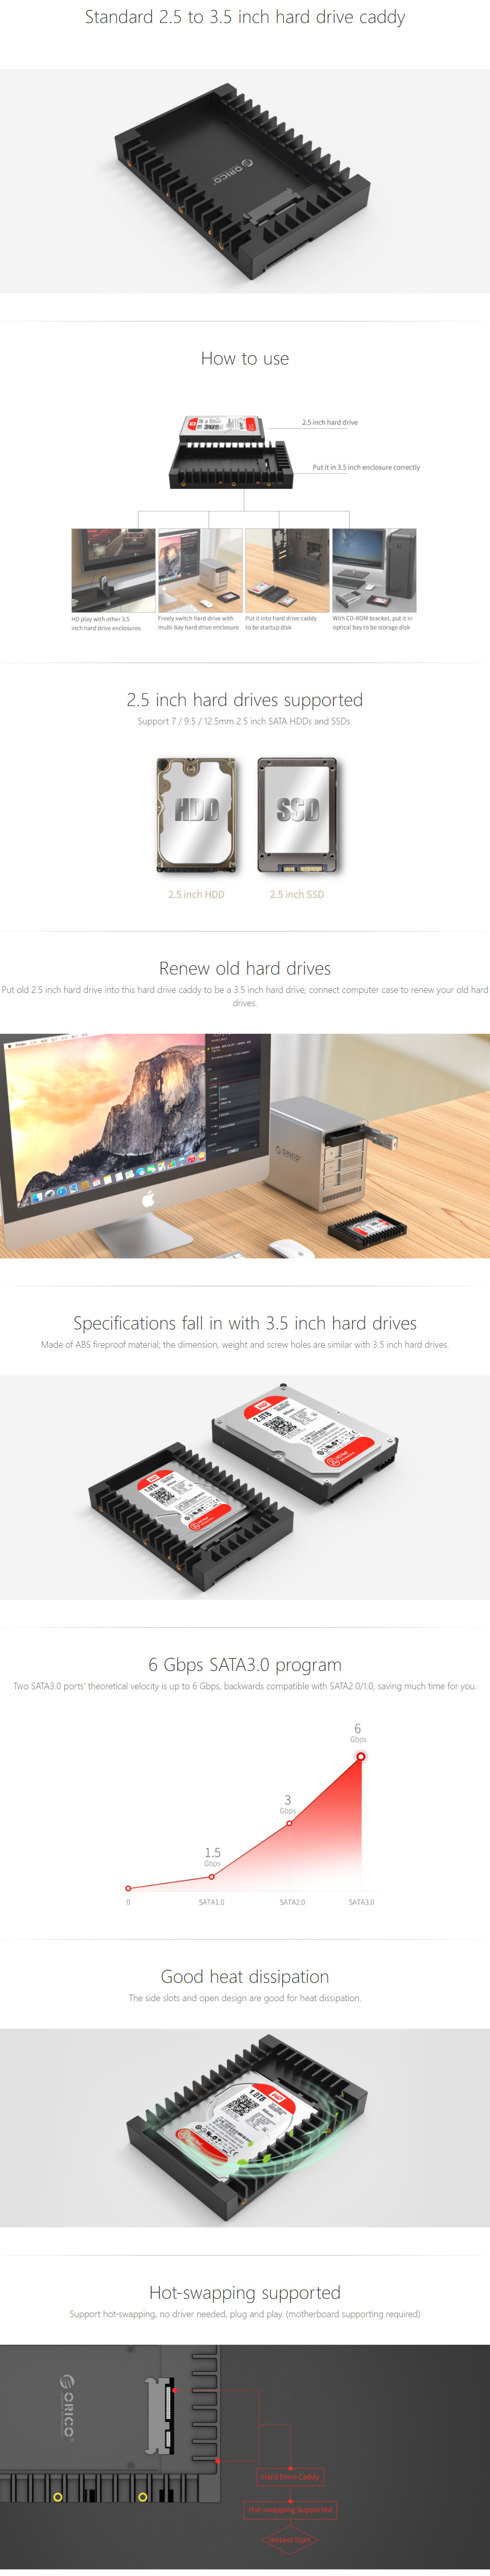 Orico 25 To 35in Hard Drive Caddy 1125ss Bk Pc Case Gear Sata Tebal Hdd 25in Or Solid State Into A Bay Made From Abs Fireproof Material The Screw Holes Align Just Like Regular